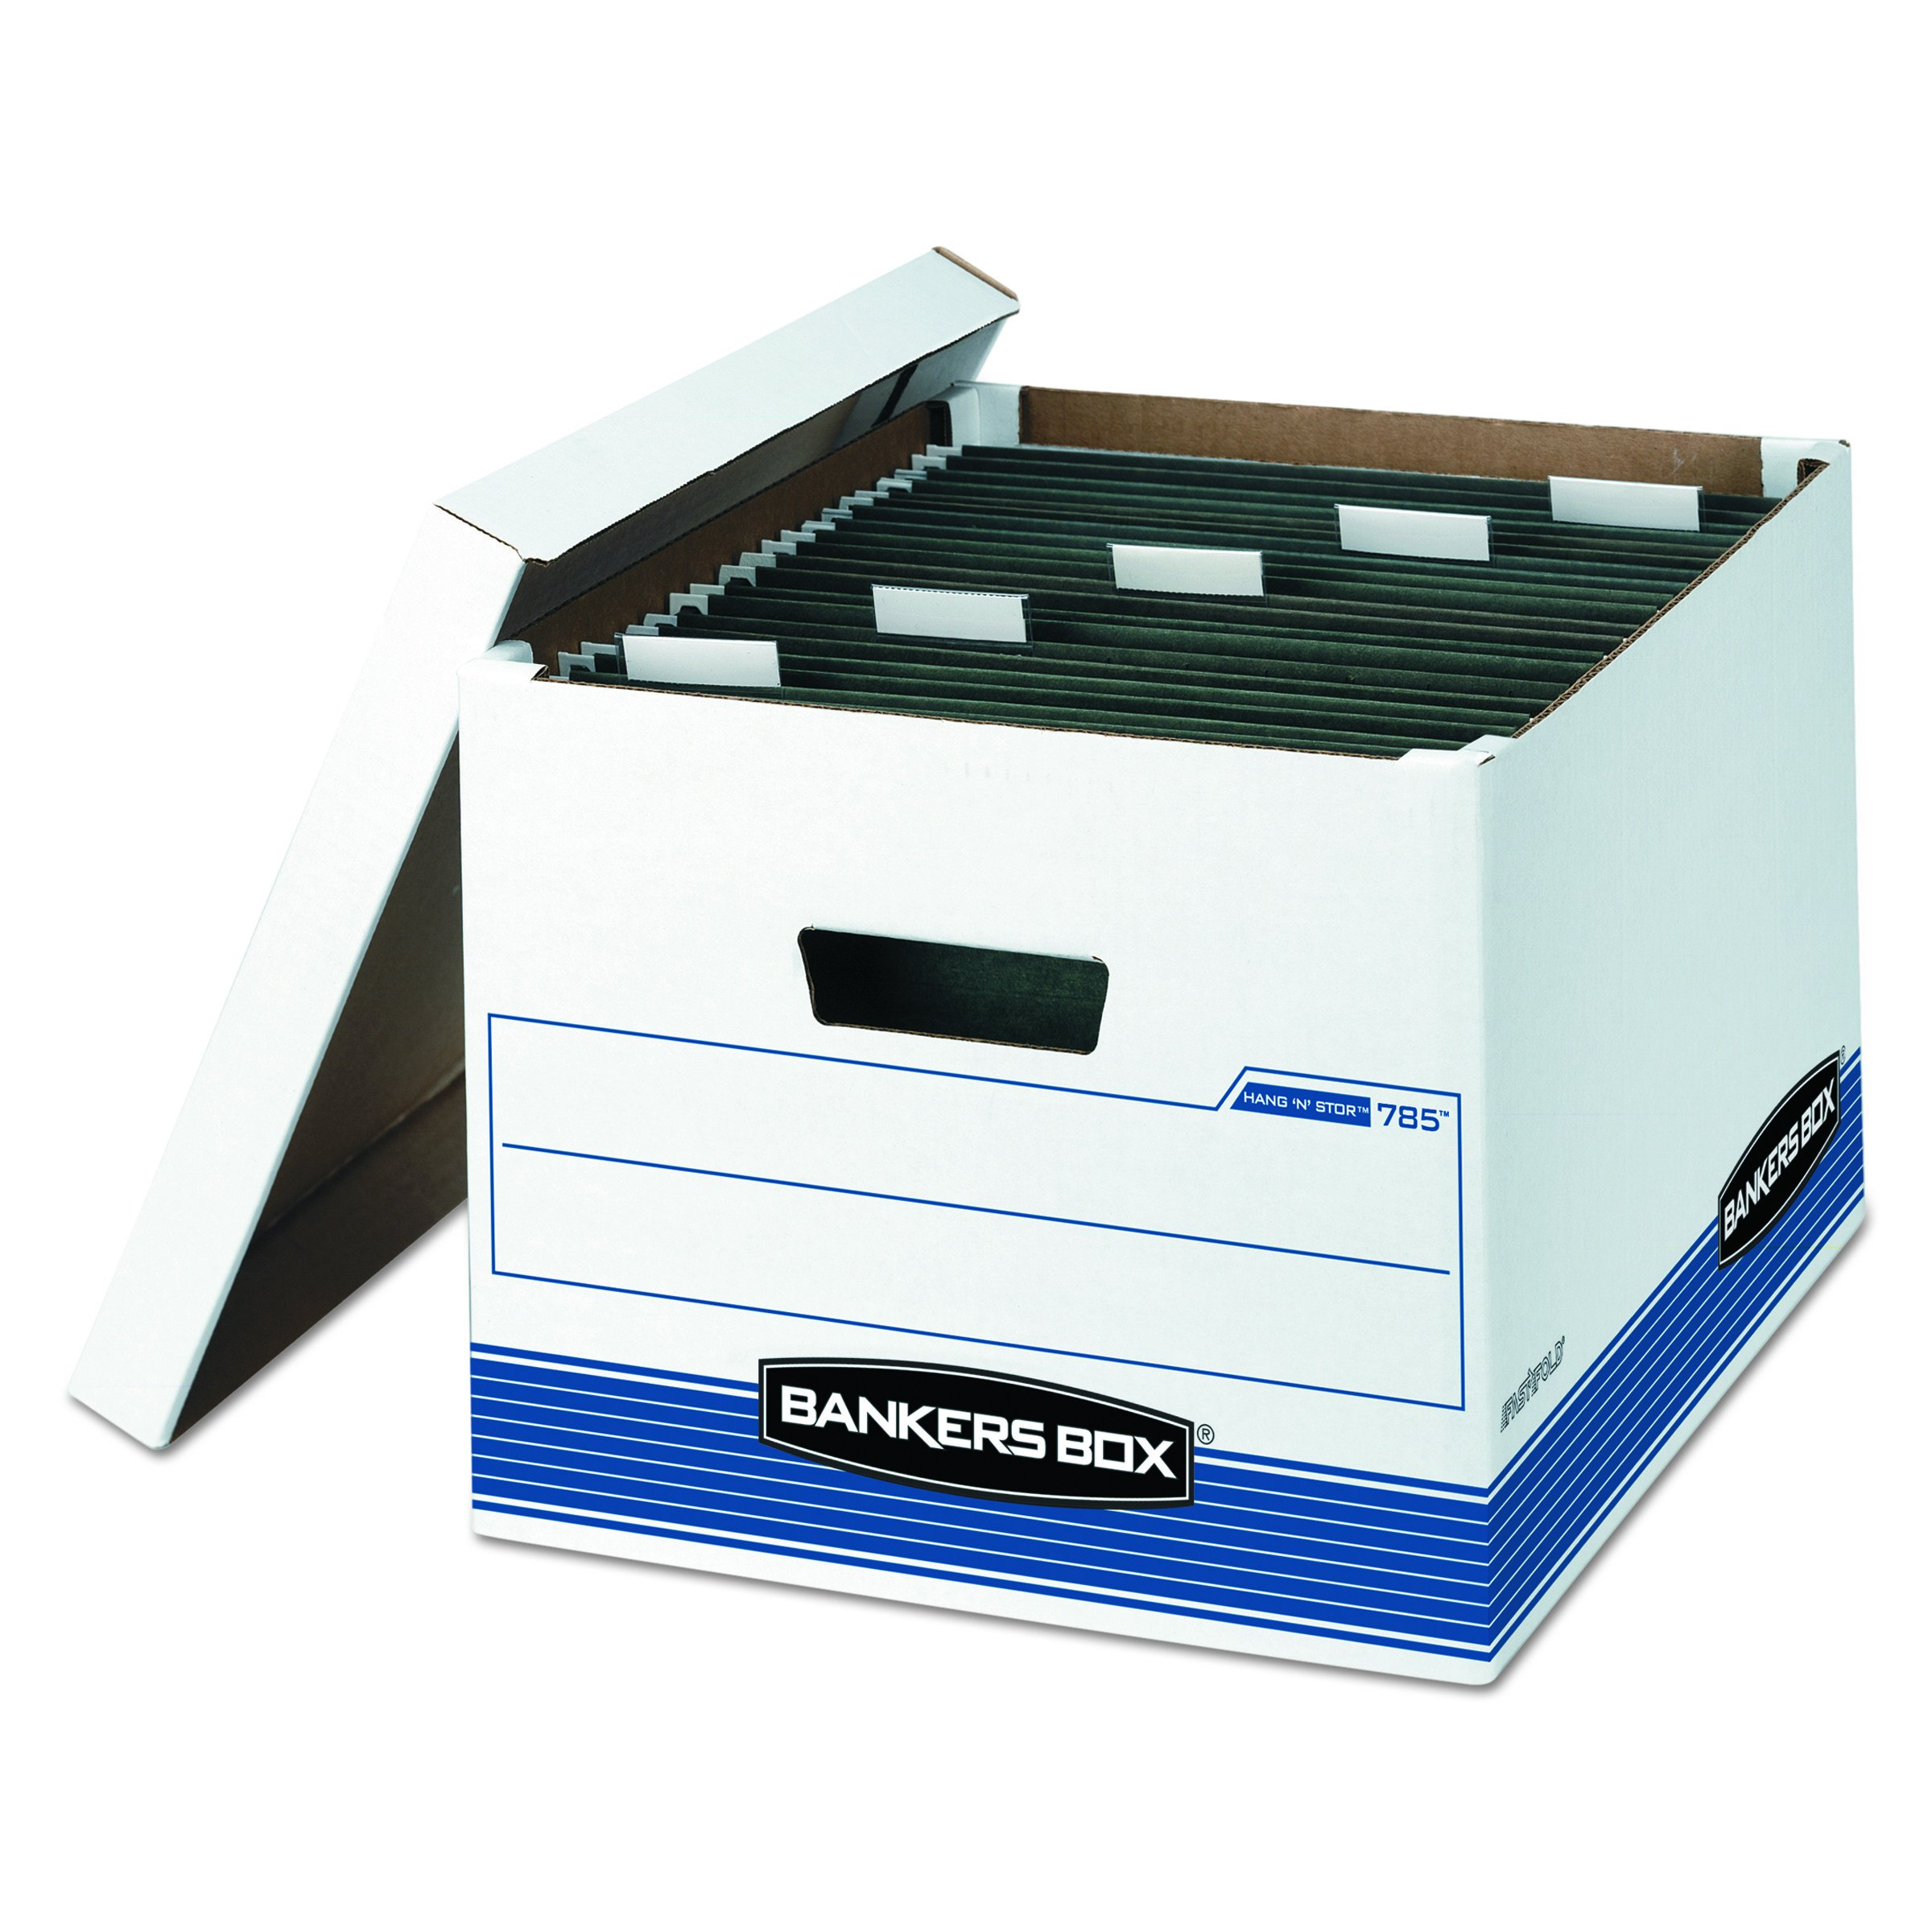 Bankers Box 00785 HANG'N'STOR Storage Box, Legal/Letter, Lift-off Lid, White/Blue (Case of 4)